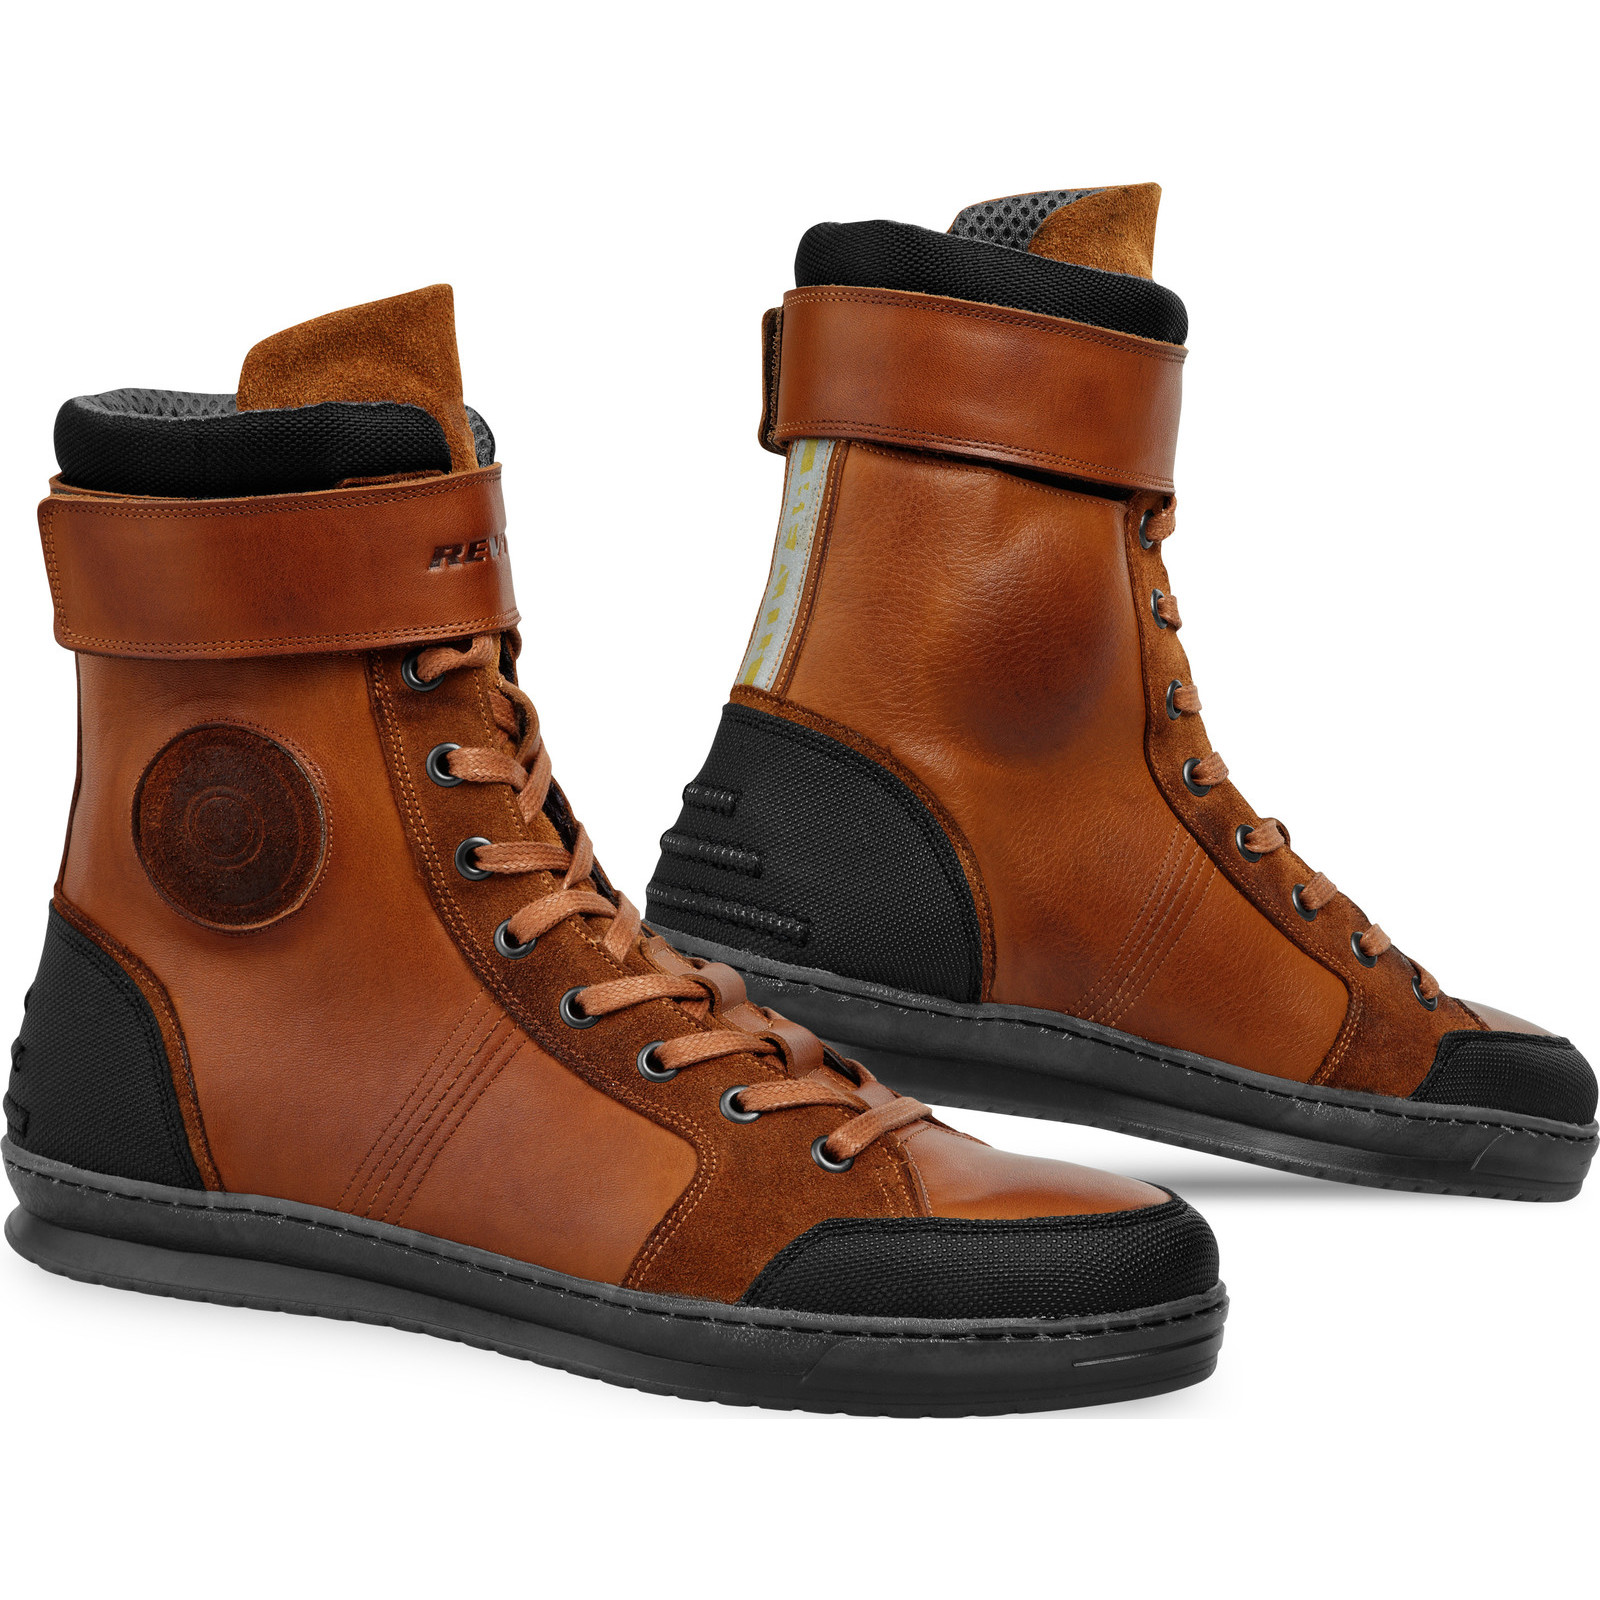 Rev It Fairfax Leather Motorcycle Shoes